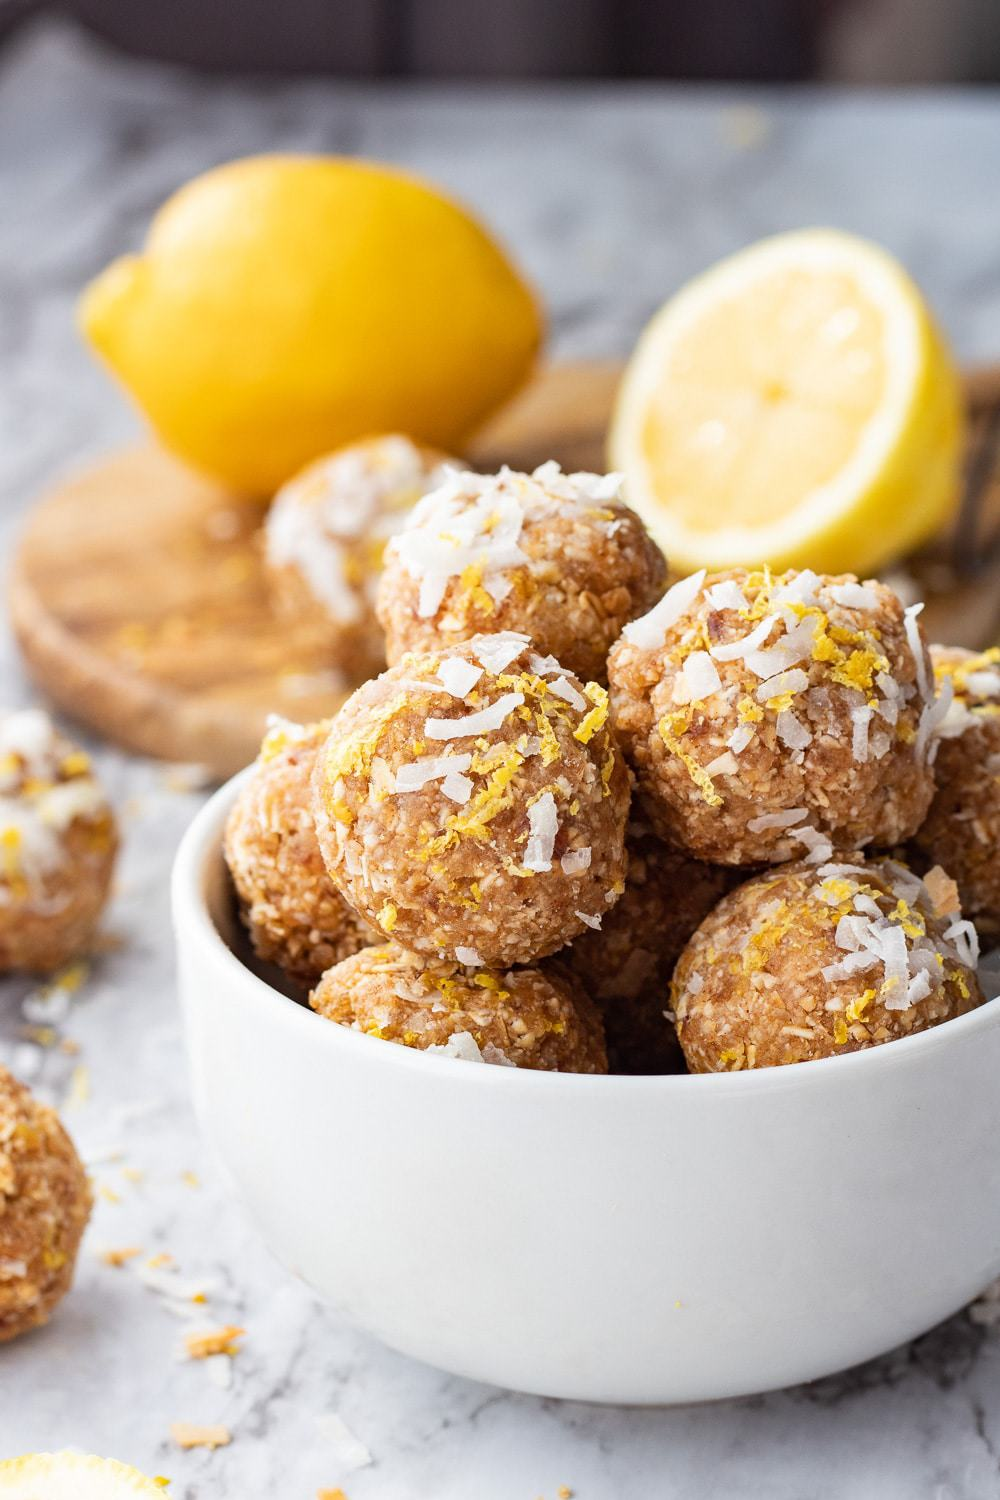 Lemon Coconut protein balls in white bowl with whole lemon and slices in background on wood board.